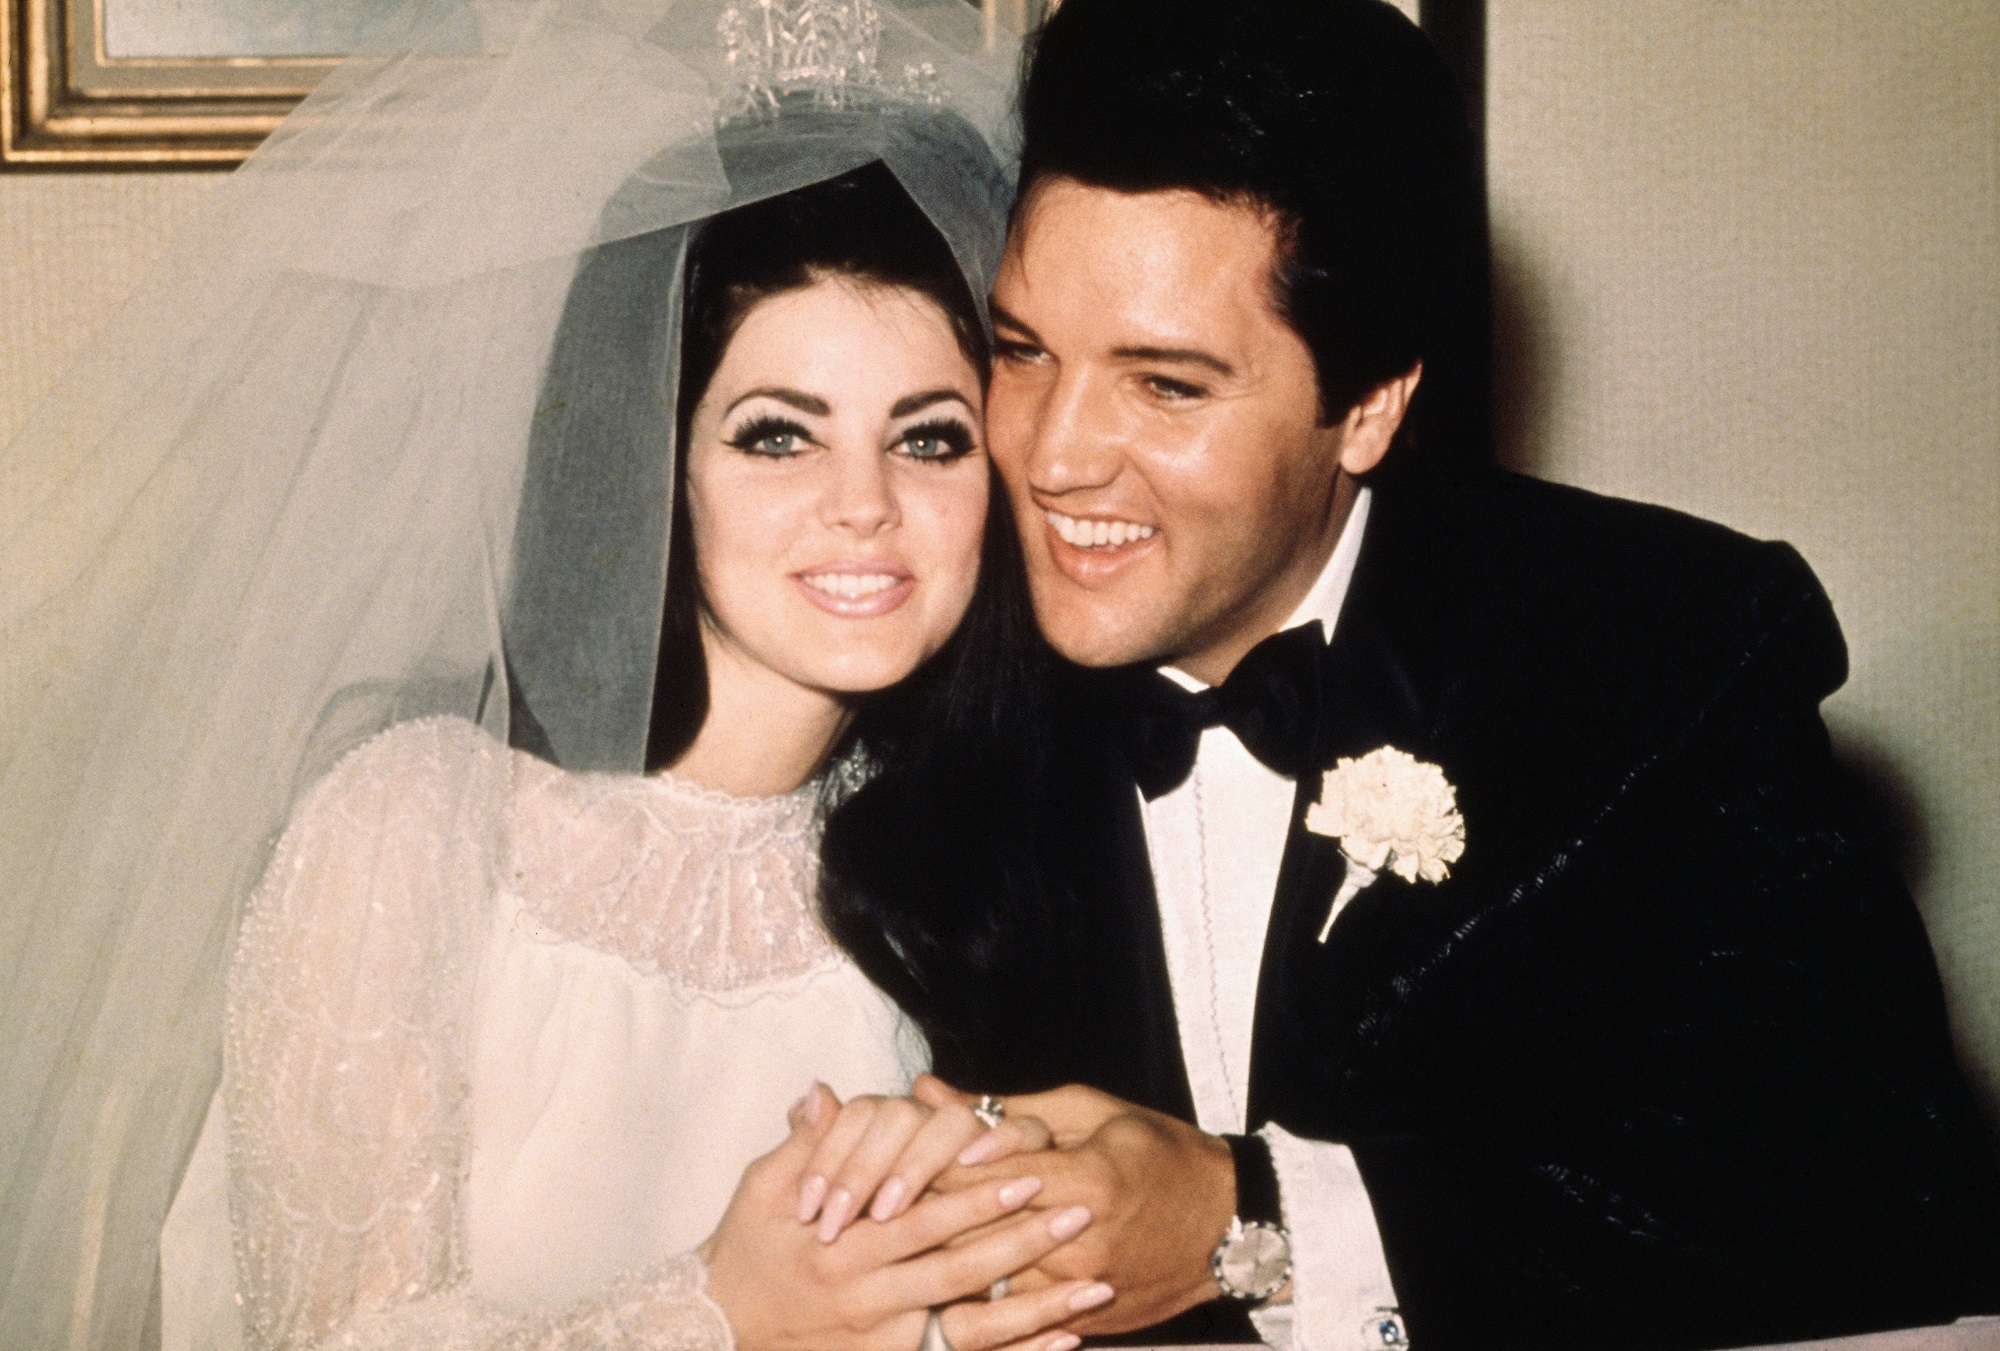 Elvis Presley and Priscilla Presley